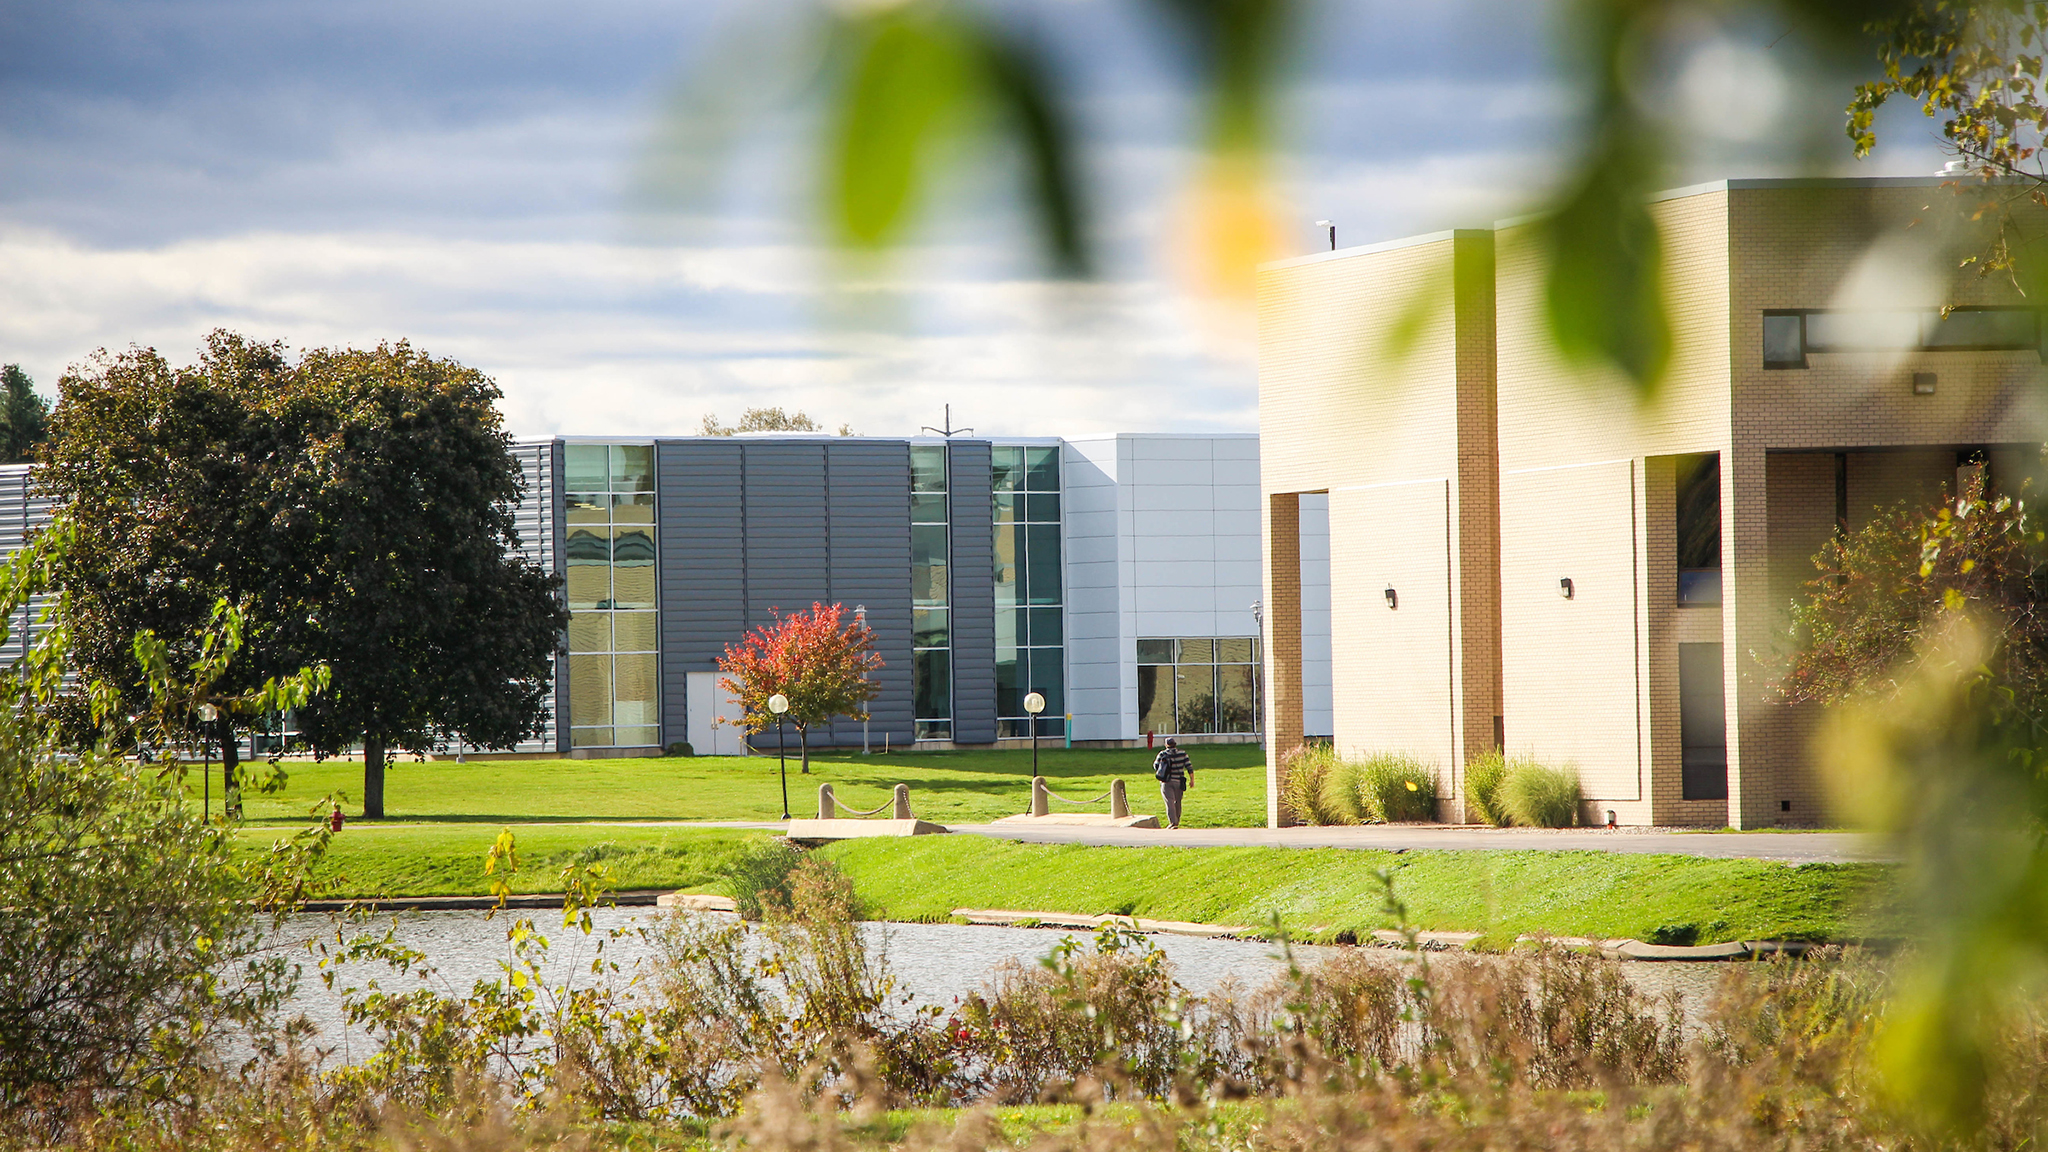 Benton Harbor campus view from the north